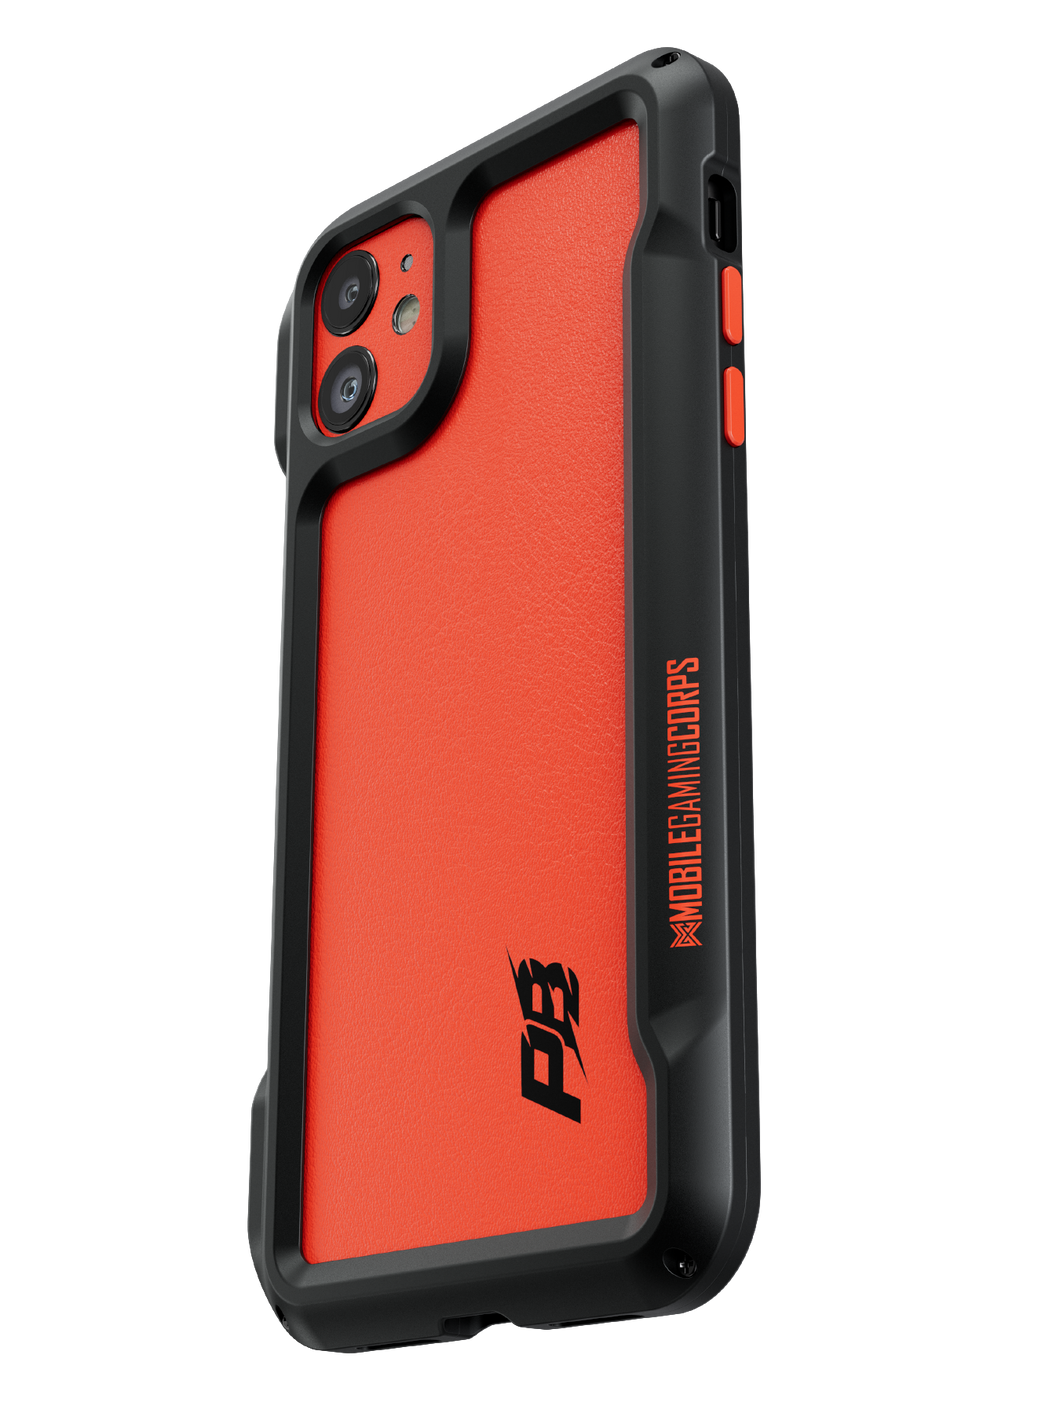 Aura Gaming Case for iPhone 11 - POWERBANG EDITION